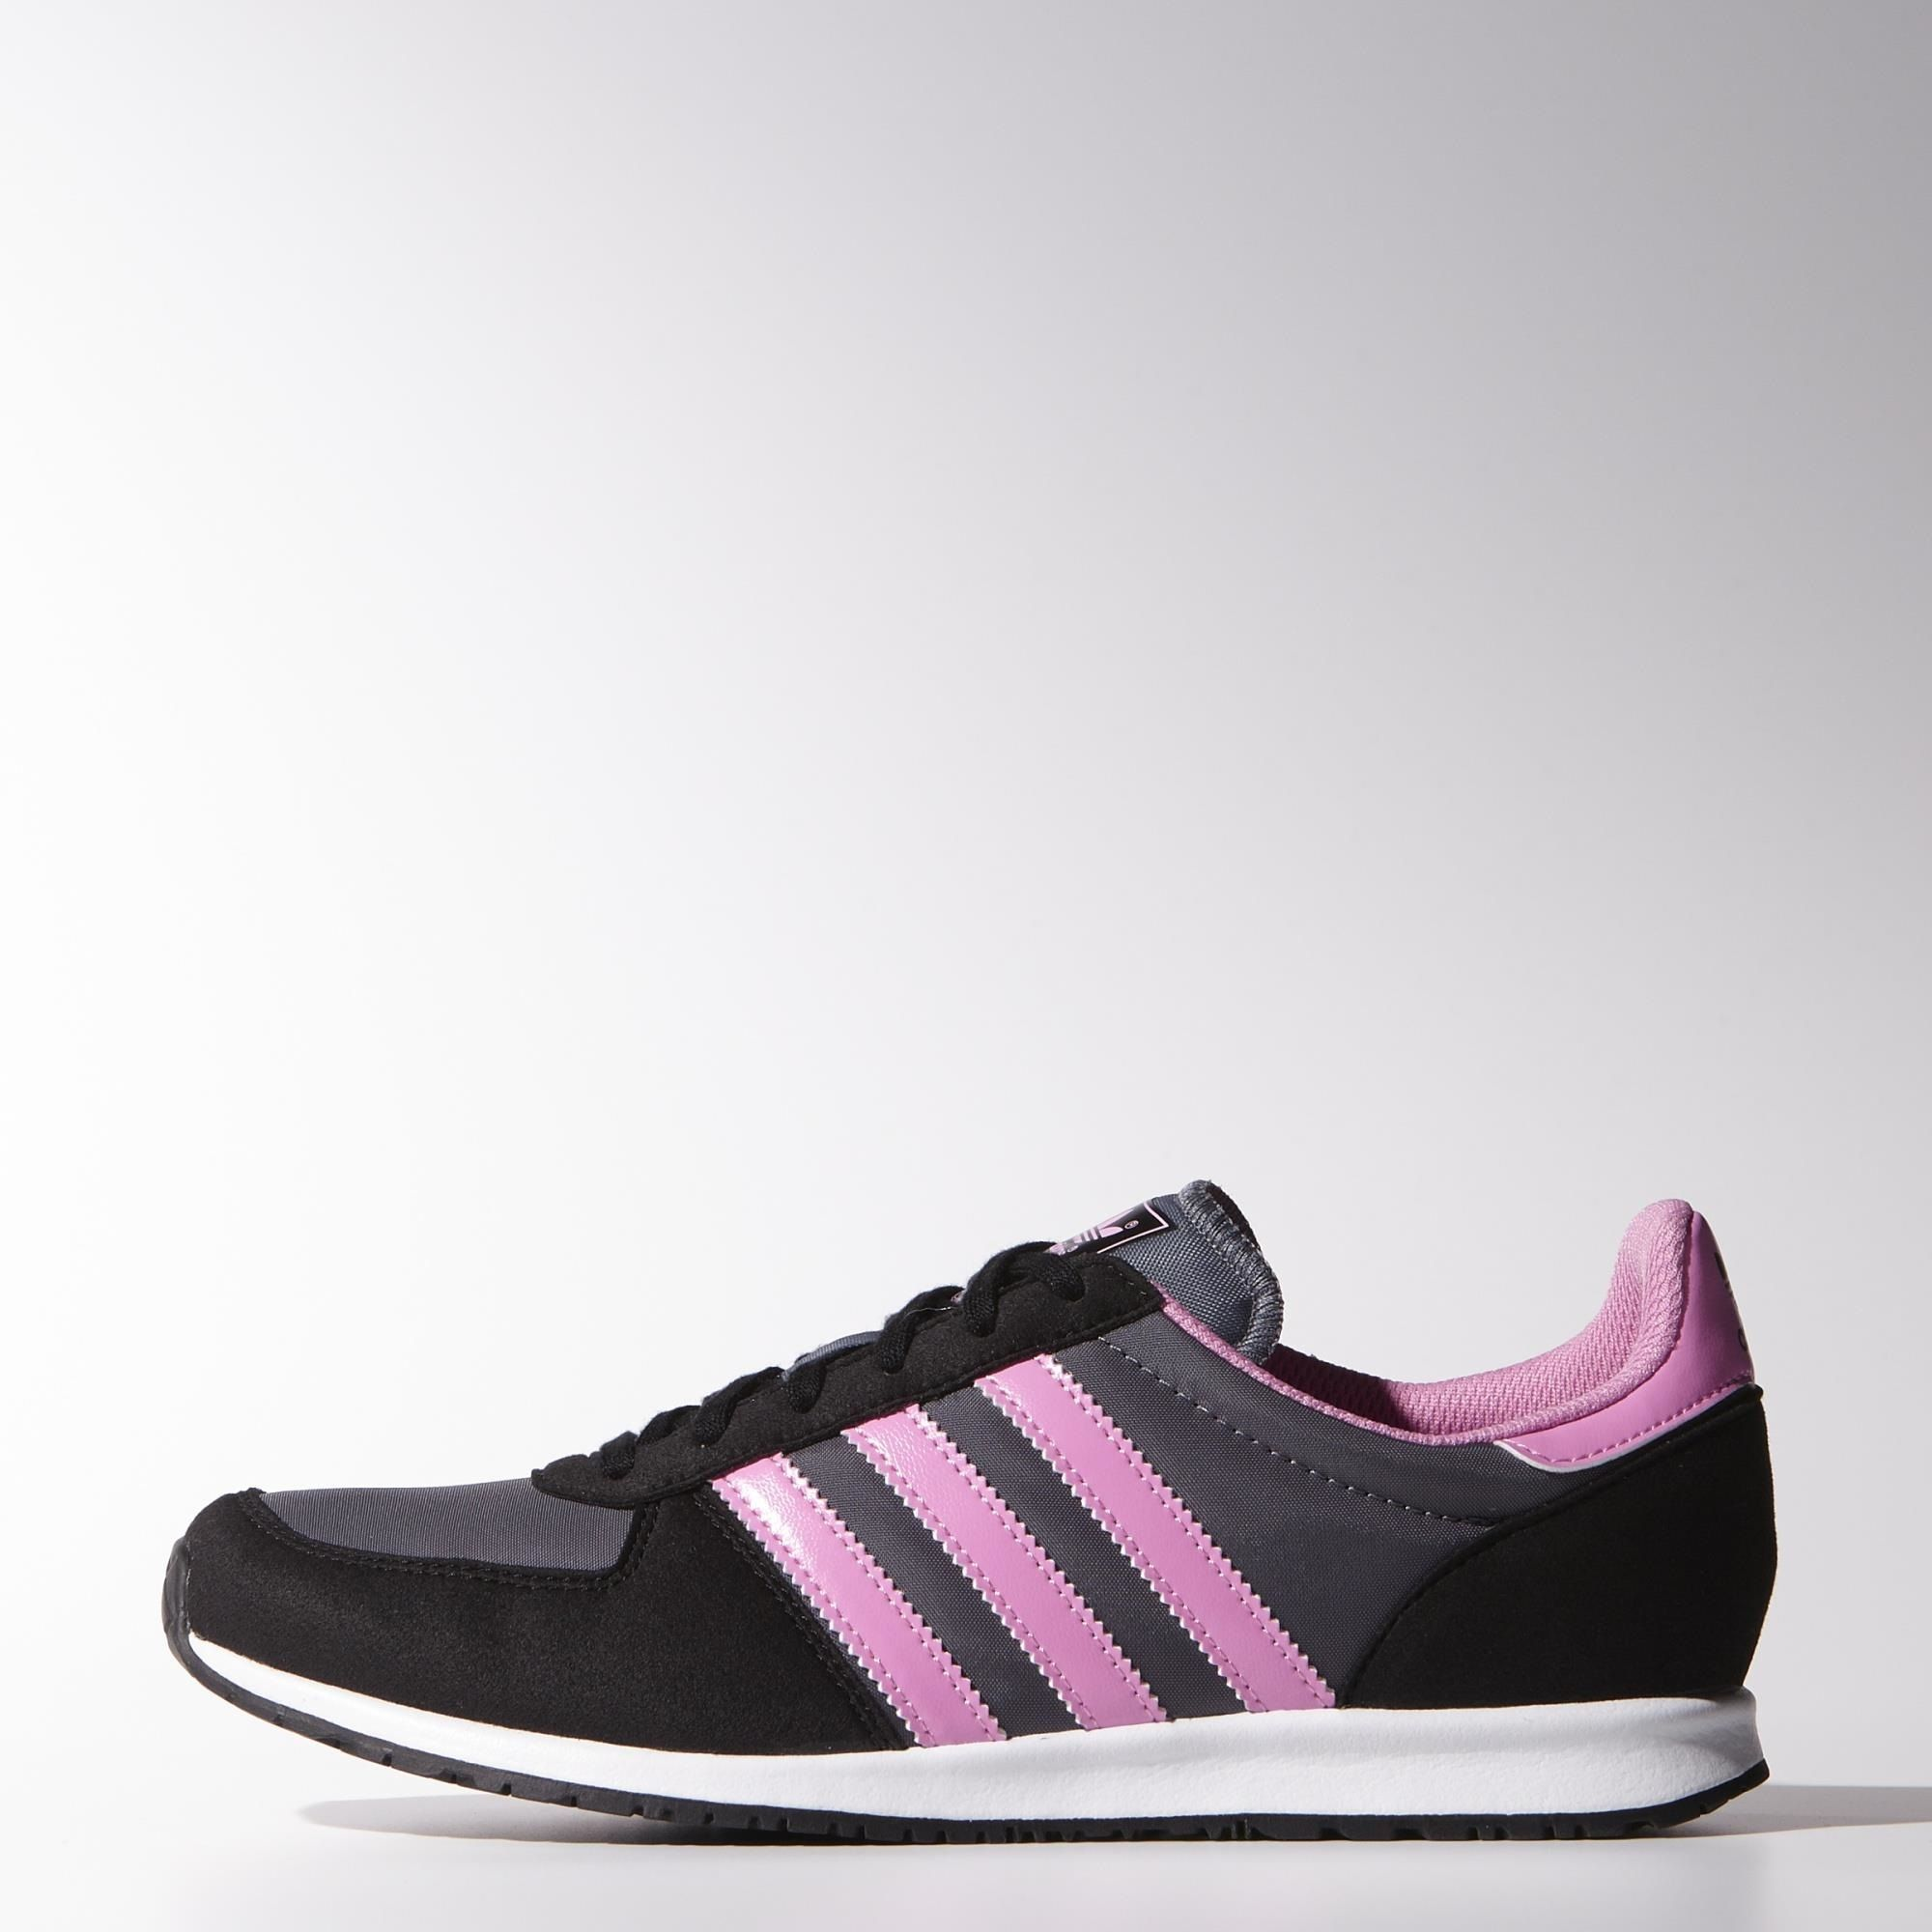 Discover your potential with adidas shoes for sports and lifestyle.